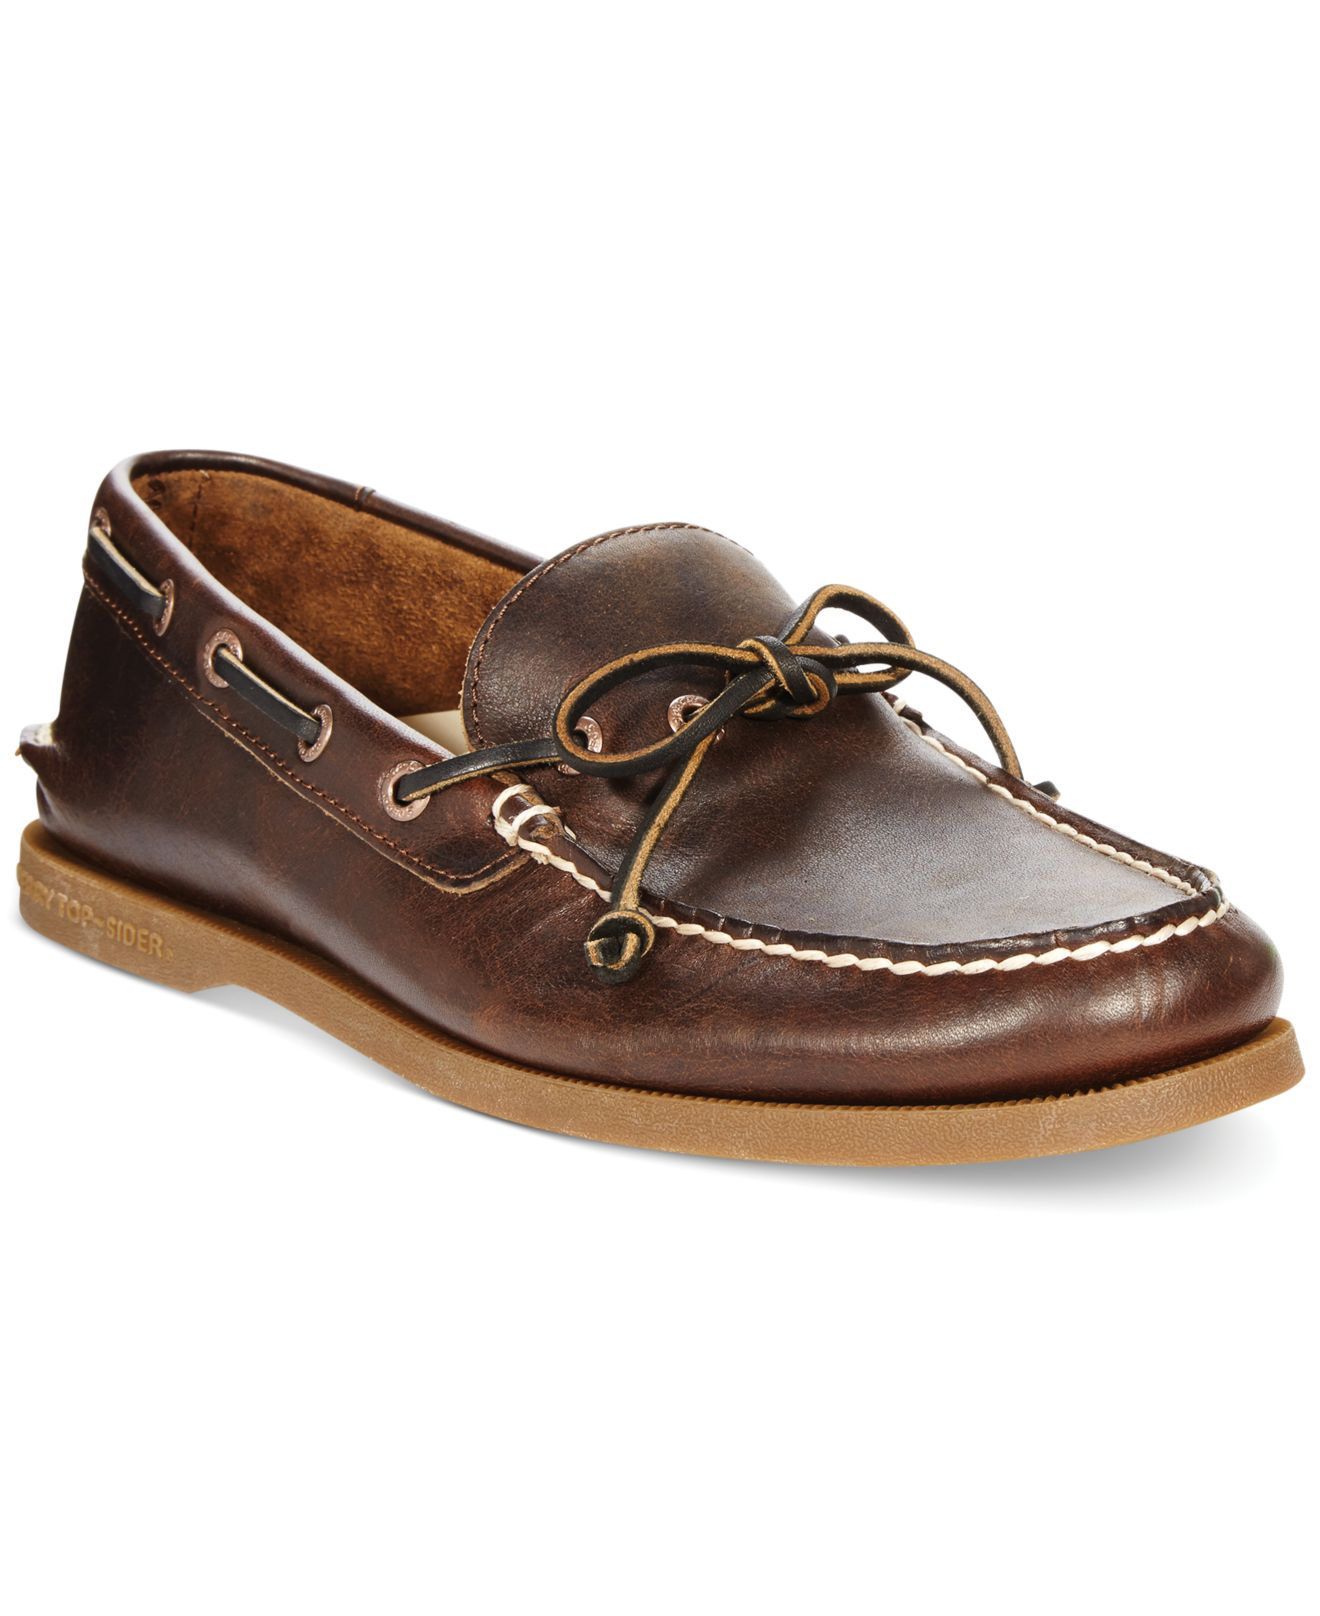 Sperry Top Sider Shoes Womens High Heel